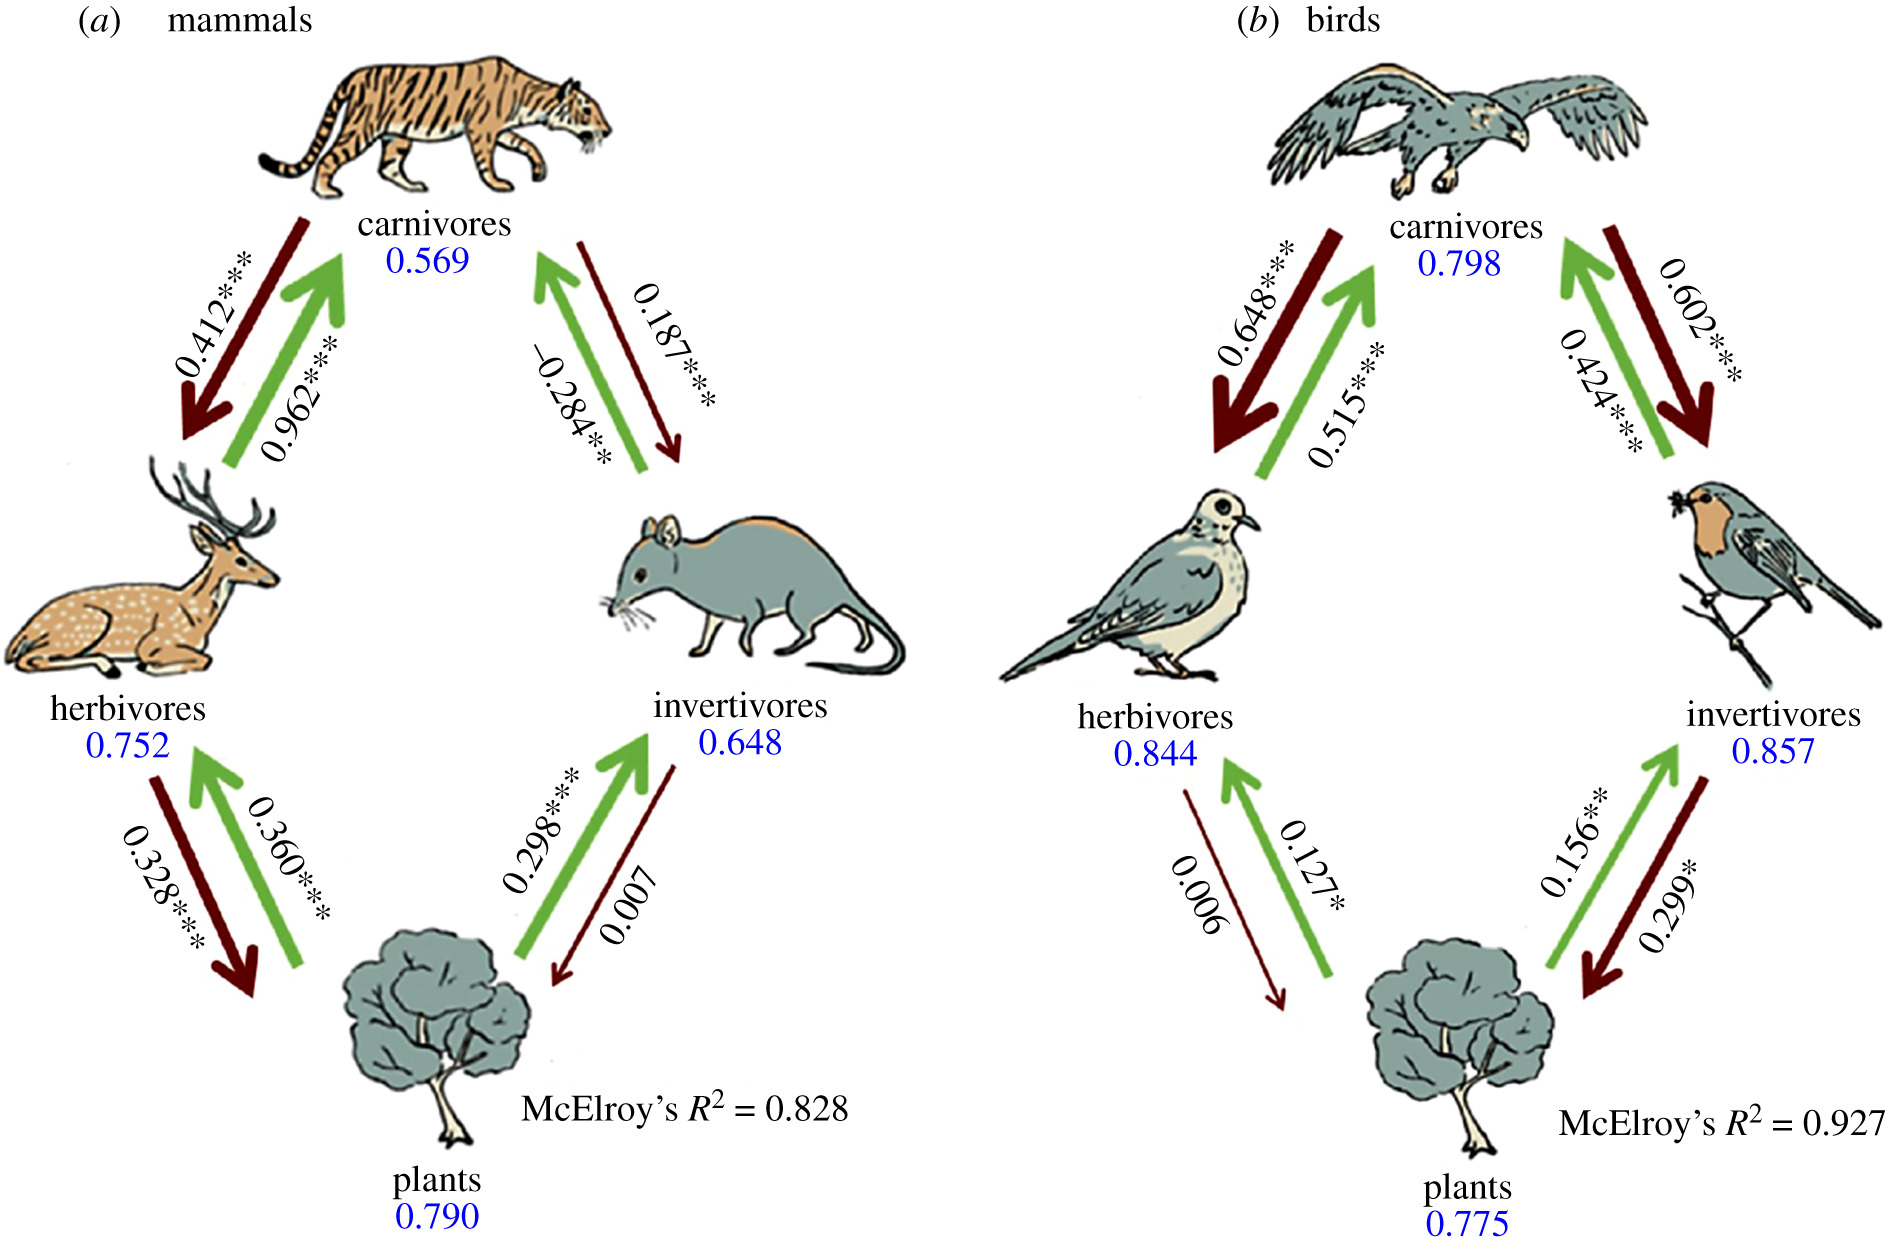 Trophic interactions among vertebrate guilds and plants